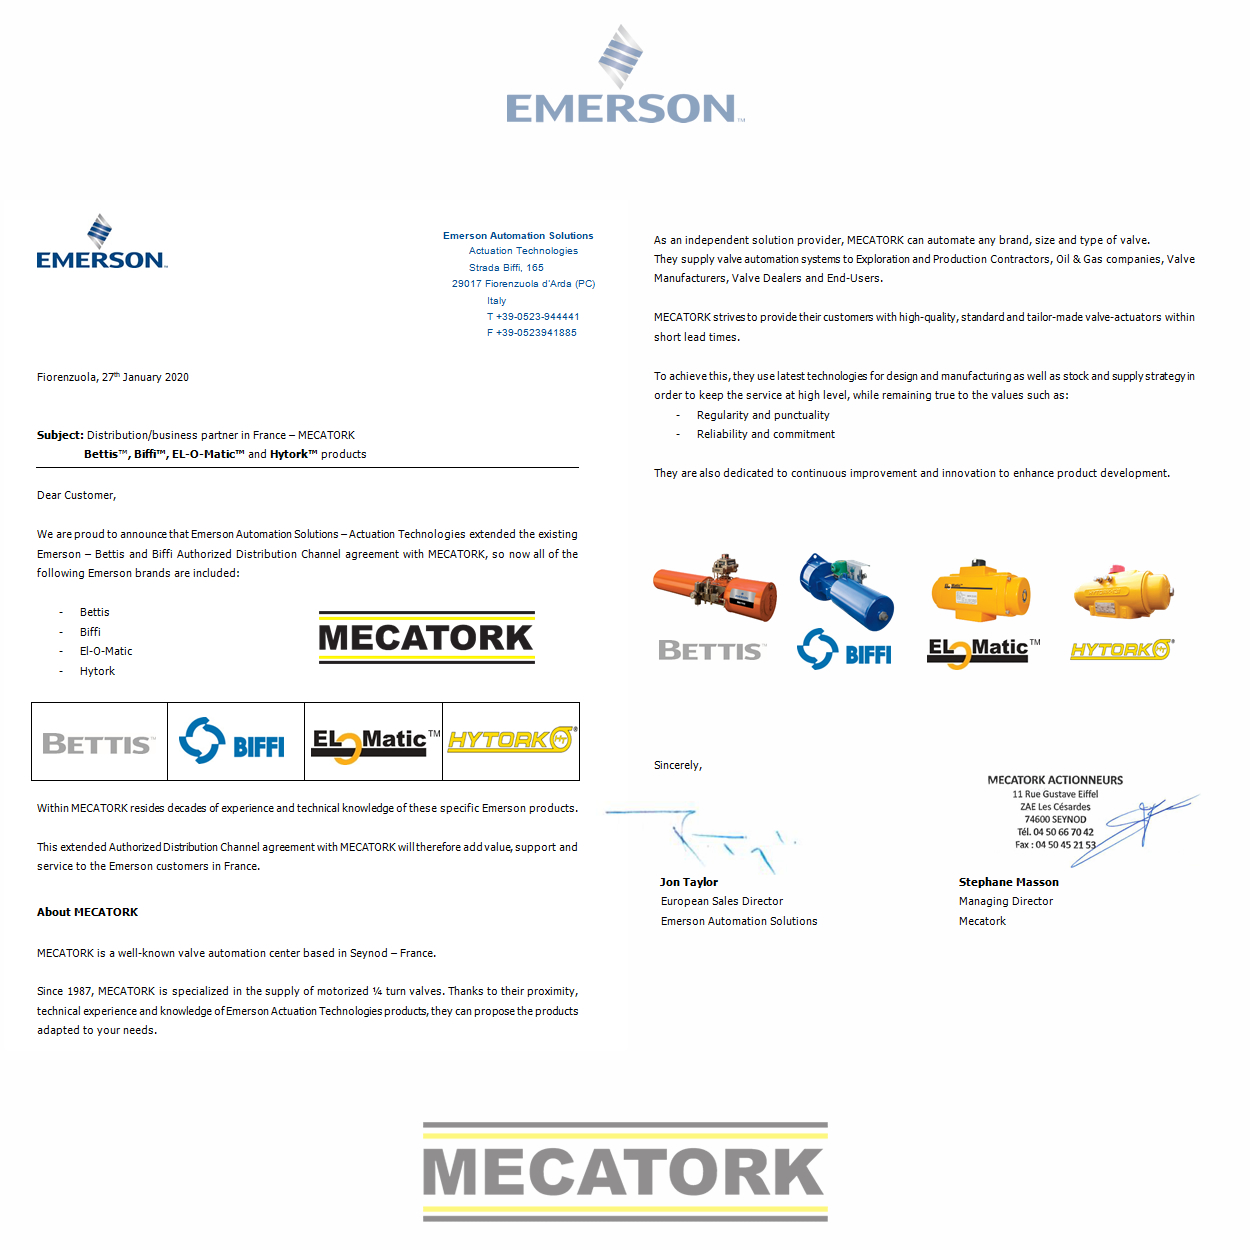 Distribution/business partner Emerson / Mecatork